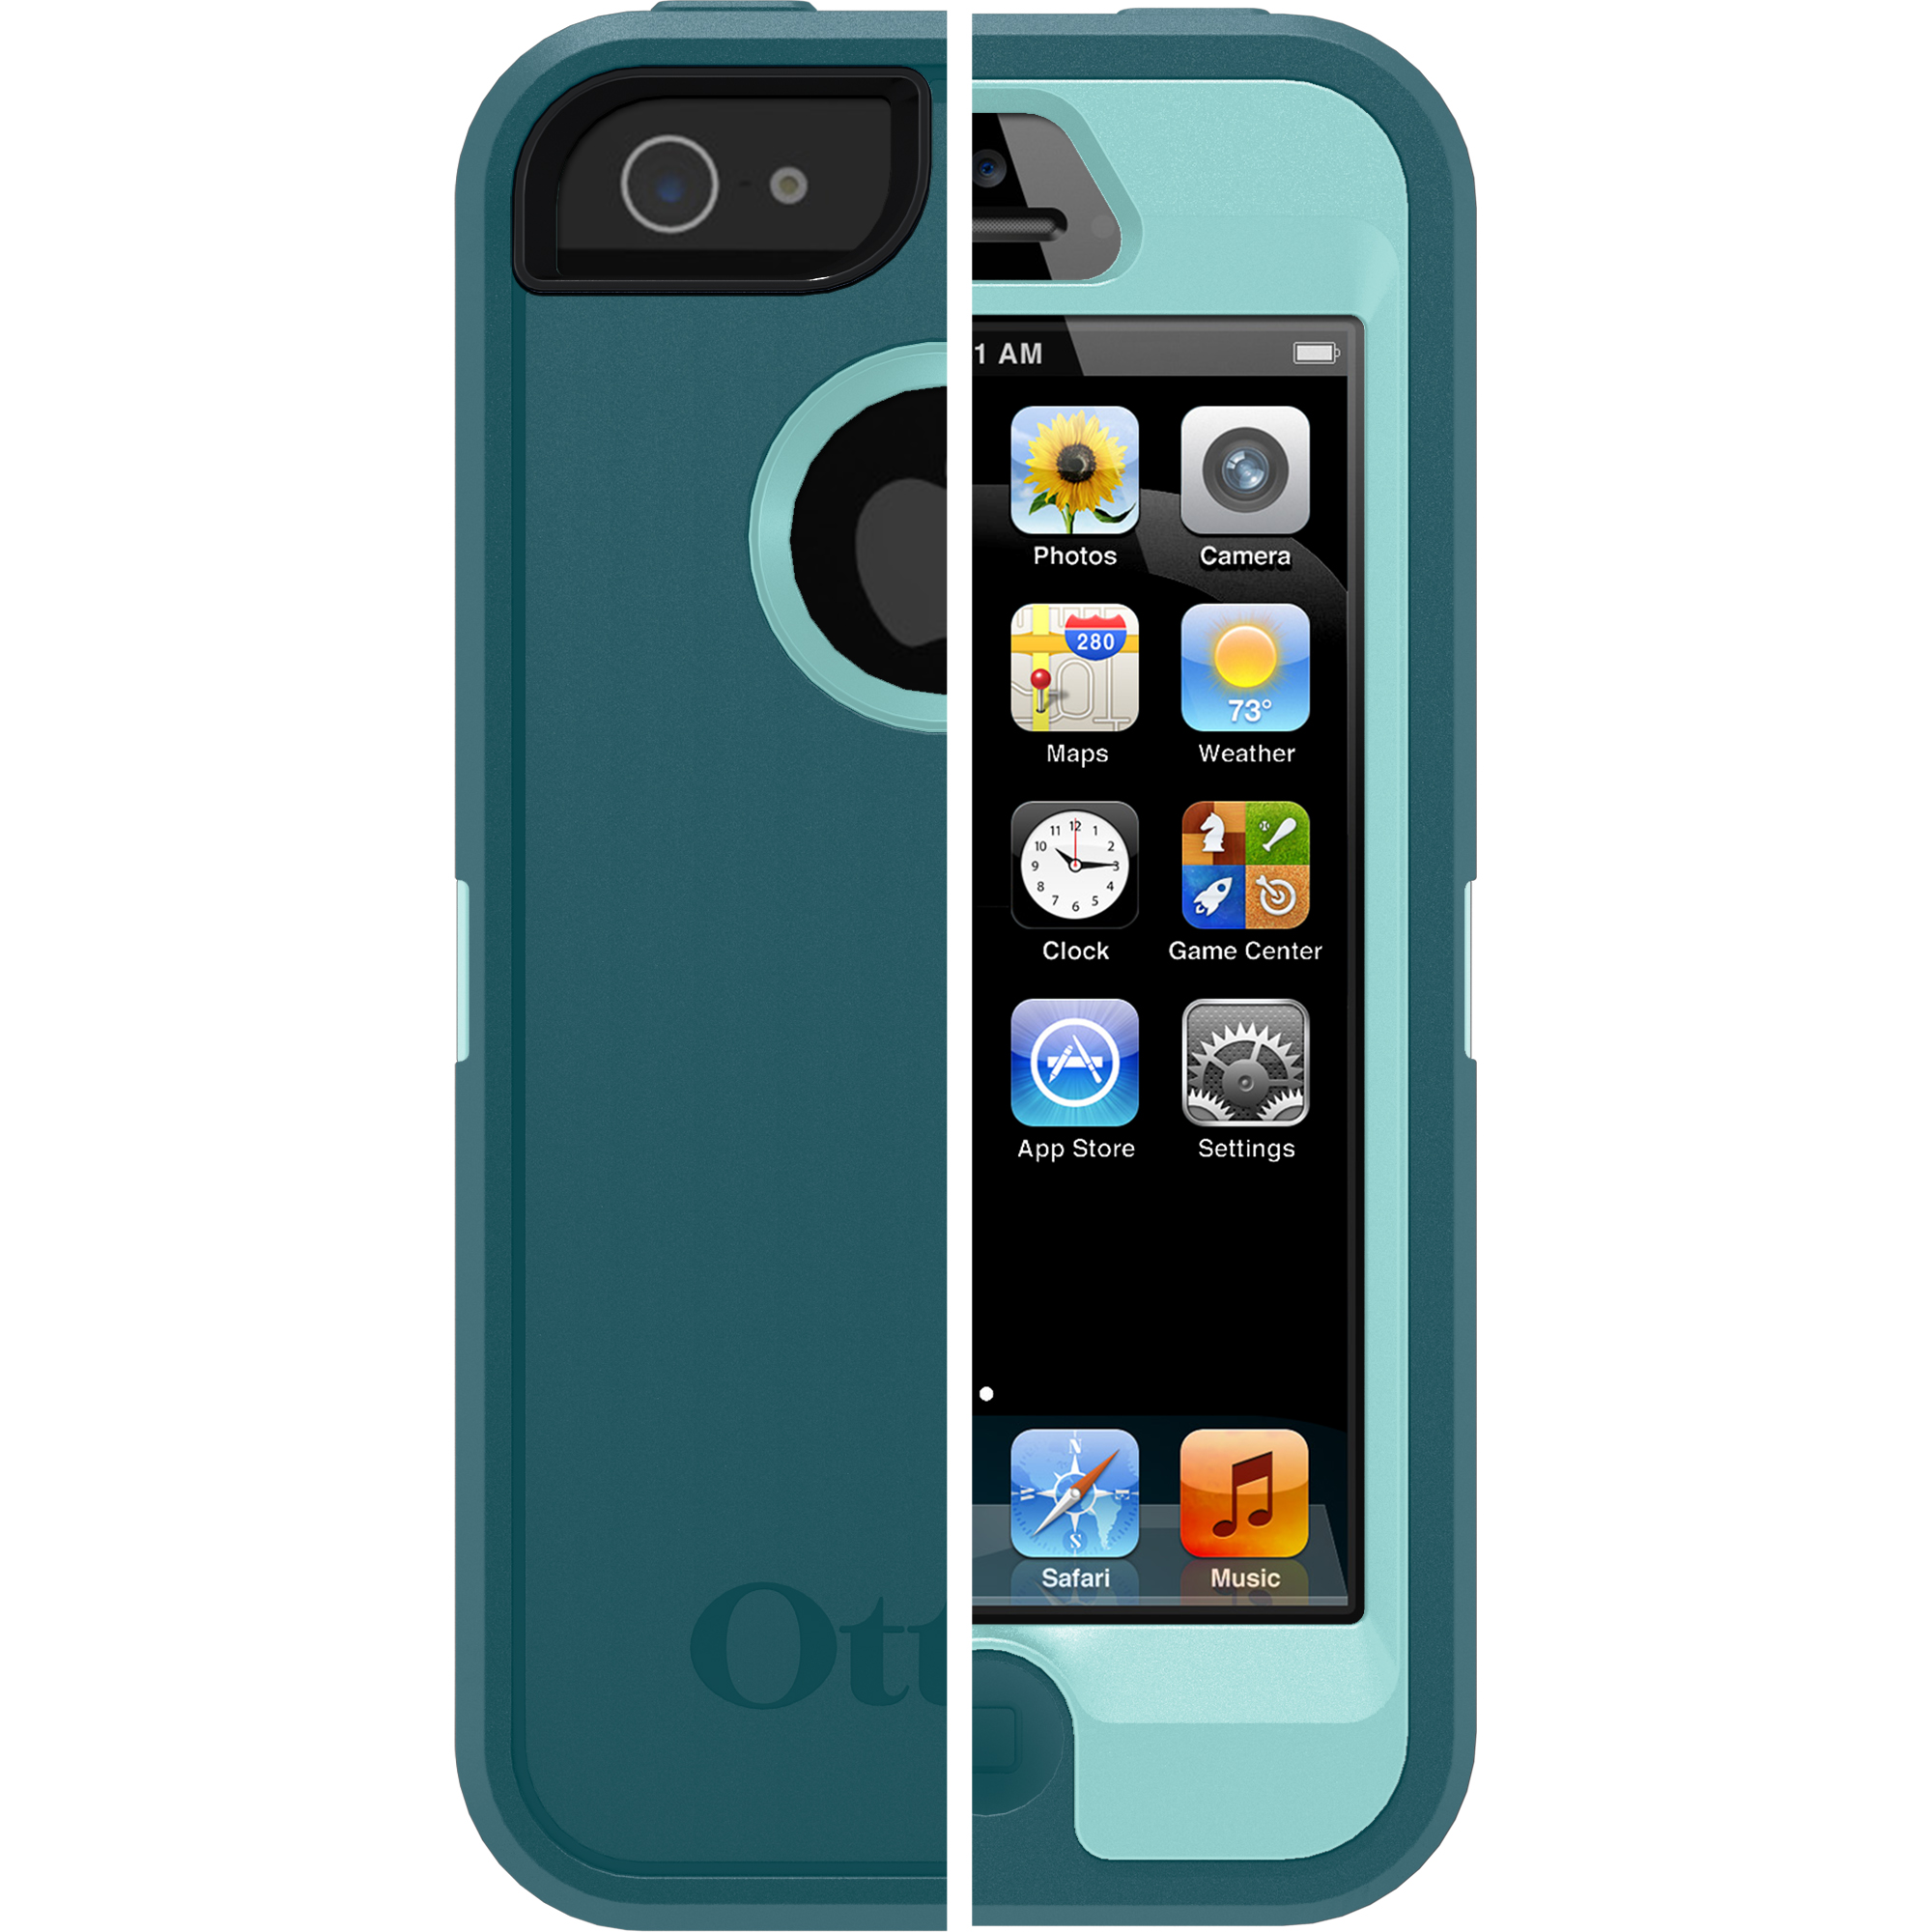 Five Protective Cases for the iPhone 5 - Bonnie Cha - Product News ...